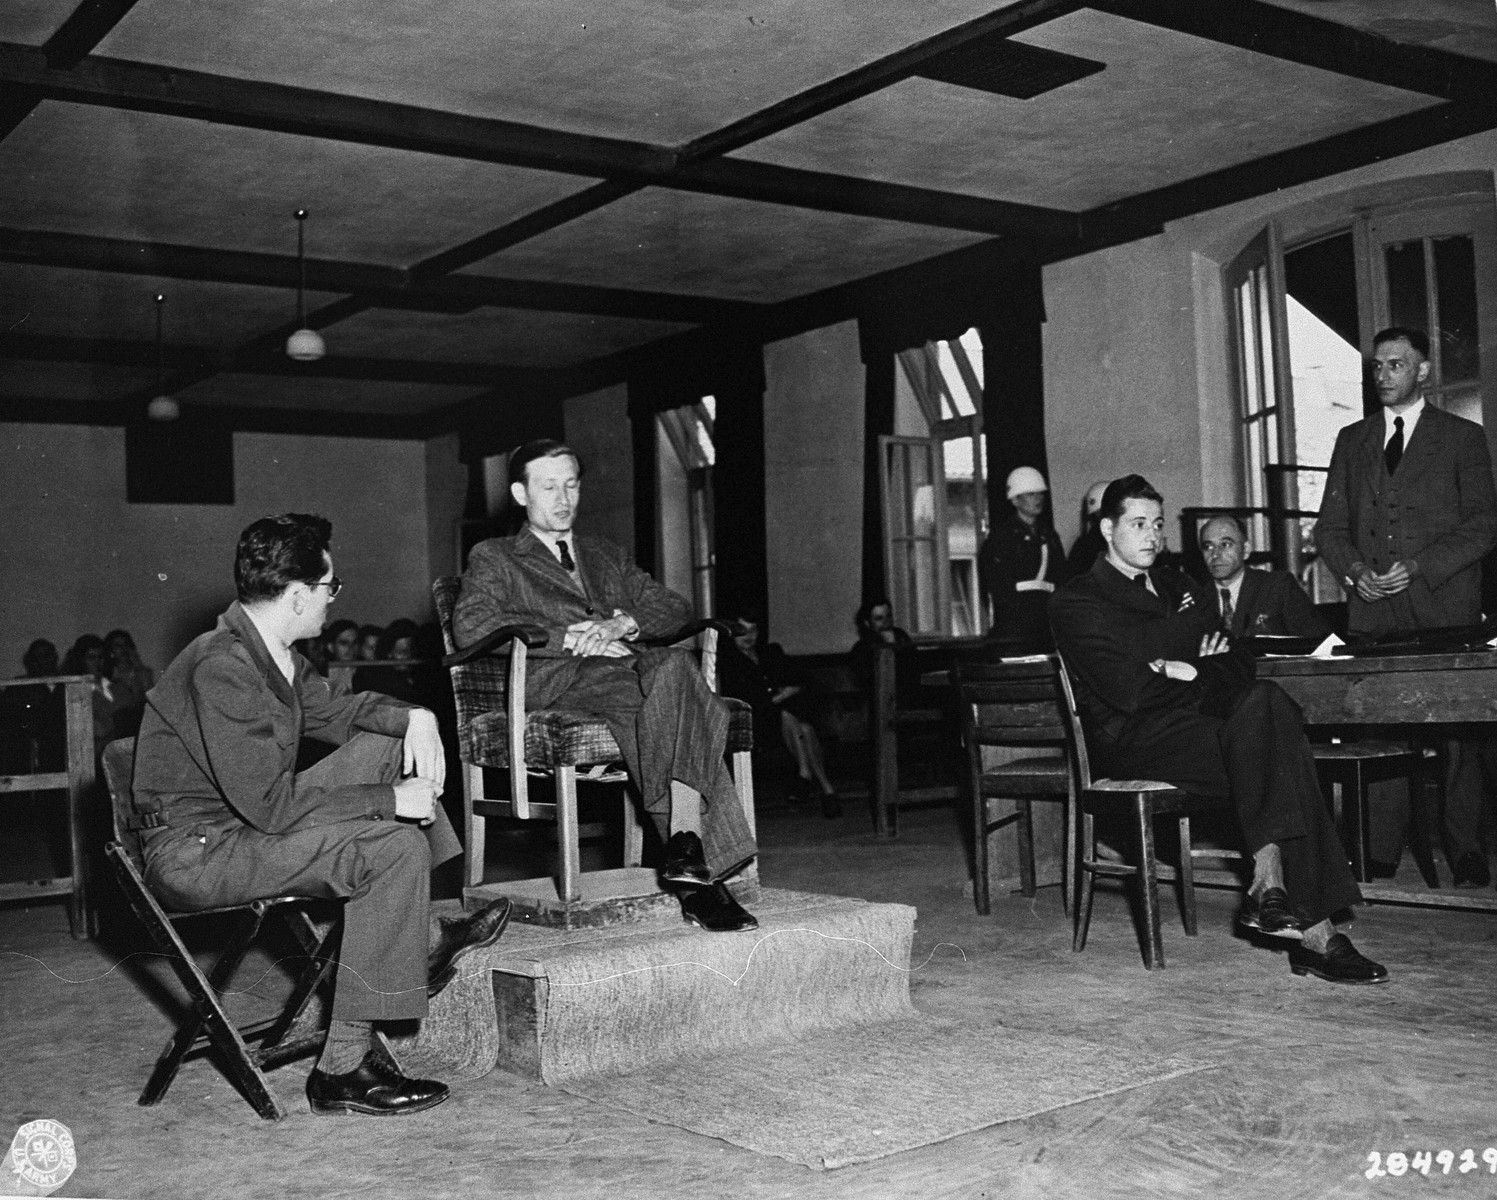 A Polish witness for the prosecution testifies at the trial of 31 former camp personnel and prisoners form the Buchenwald concentration camp.    Court personnel pictured from left to right are: Martin Szpigielman, a Polish interpreter; the unidentified Polish witness; Fred Stecker, a German interpreter; and Dr. Richard Wacker, a defense attorney (standing).